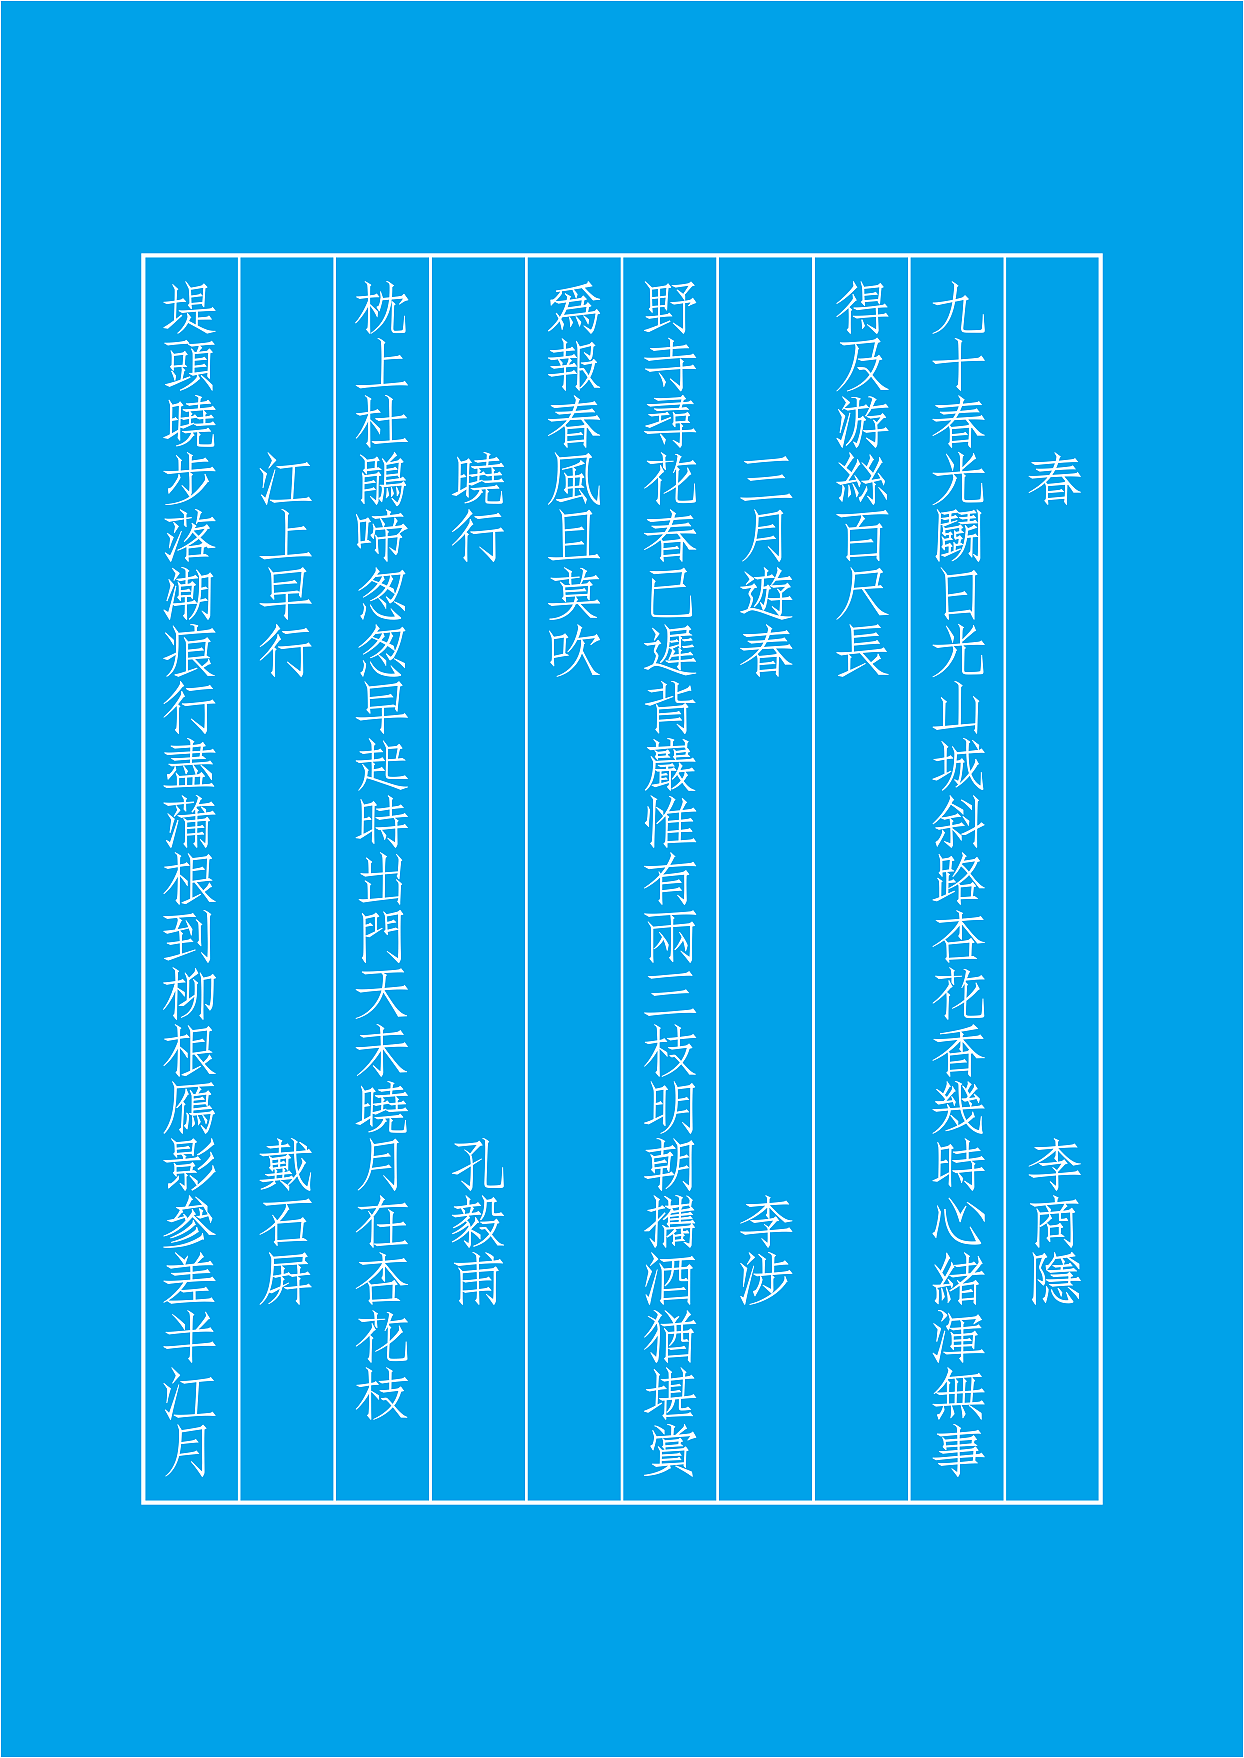 Chinese Creative Font Design-Featured Song-like fonts